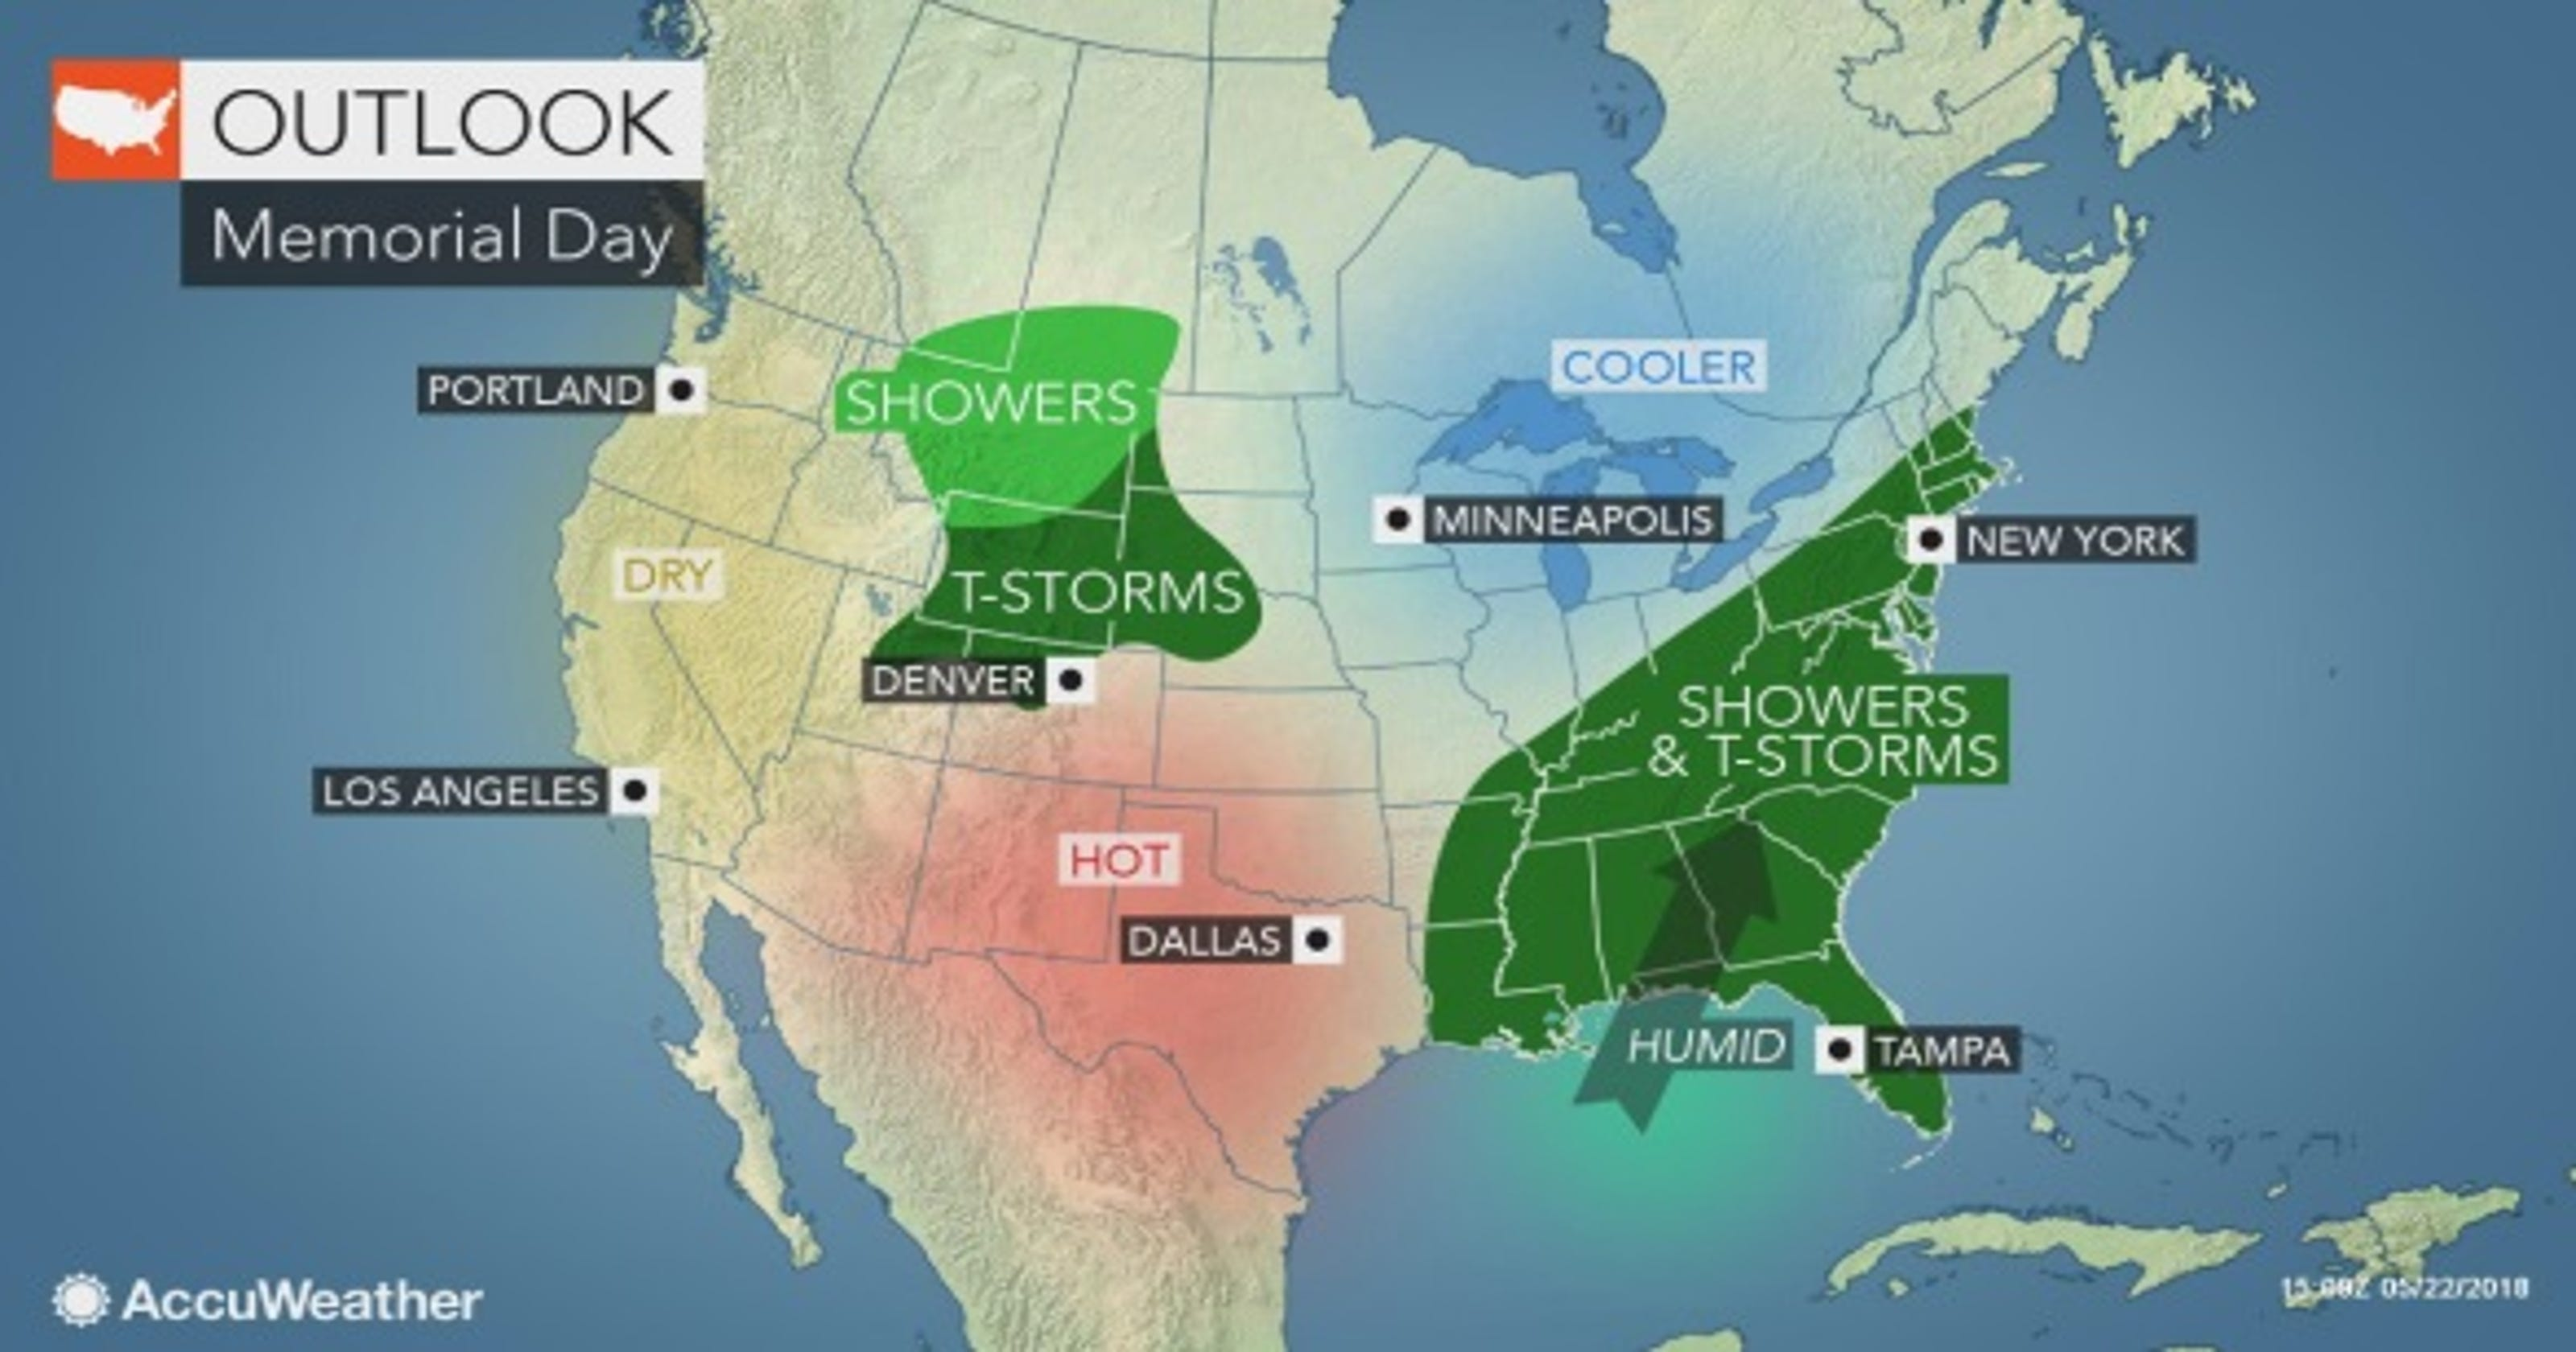 Weather: Here is the best time for Memorial Day weekend plans